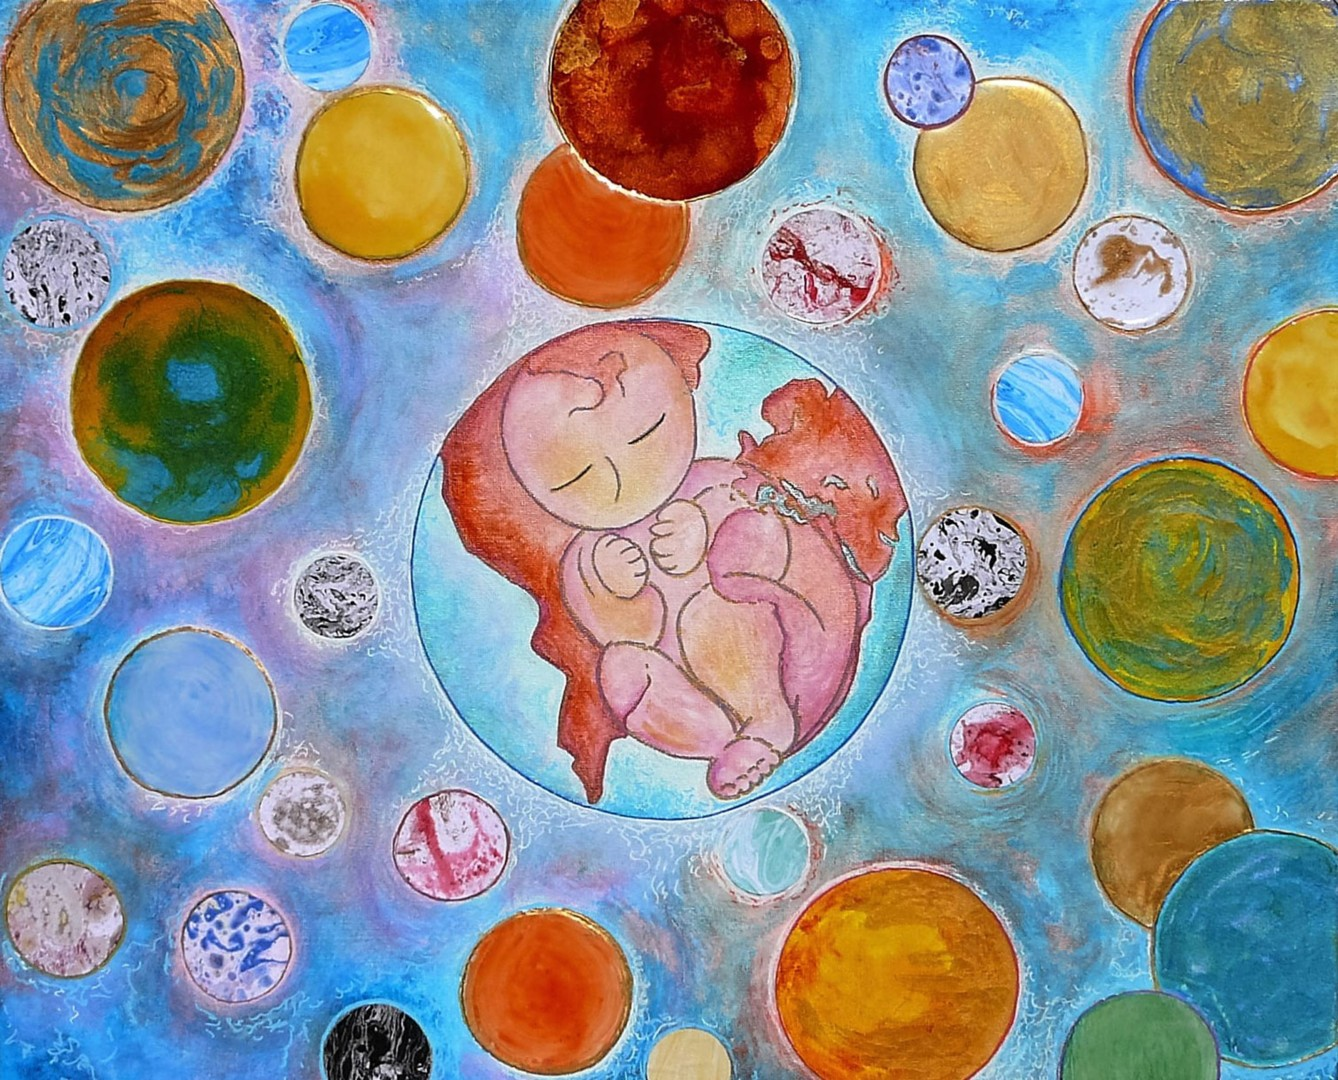 Gioia Albano - My place in the world #artistsupportpledge